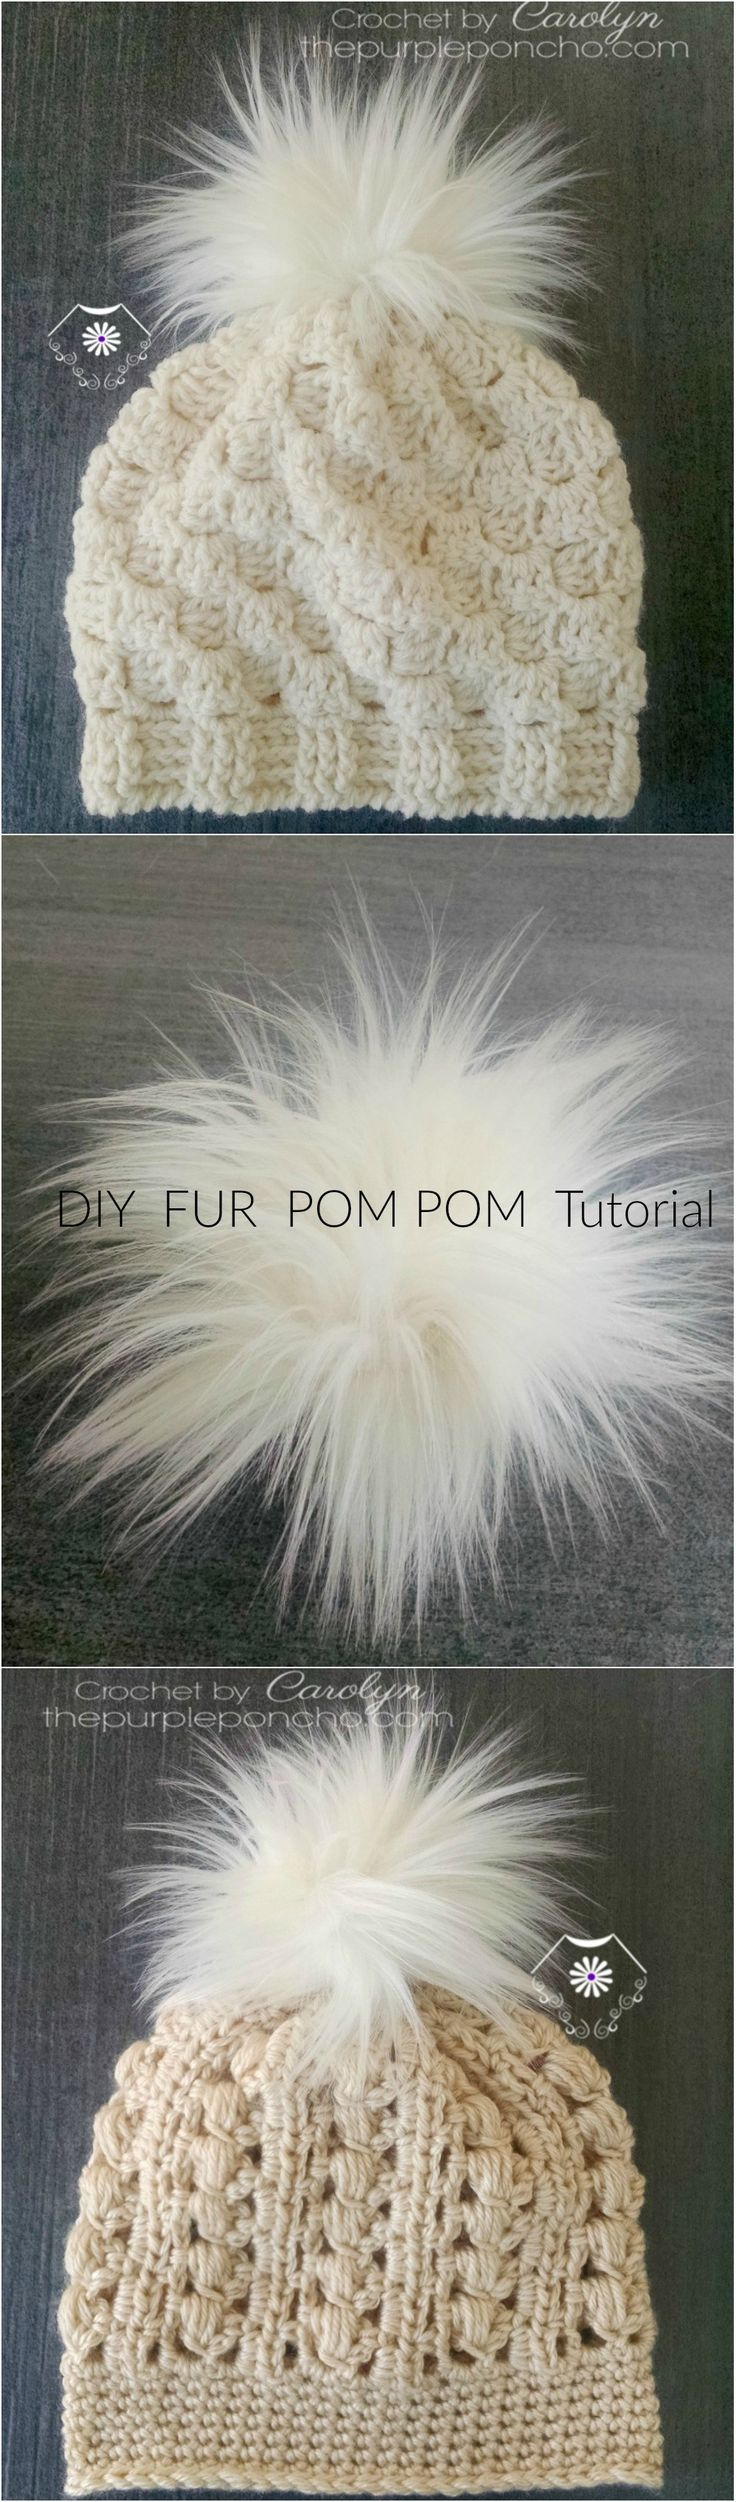 A tutorial on you how to make your own fur pom poms! Fur pom poms on garments are really on trend right now. I've seen them on almost everything from ponchos, handbags, scarves, and of c…